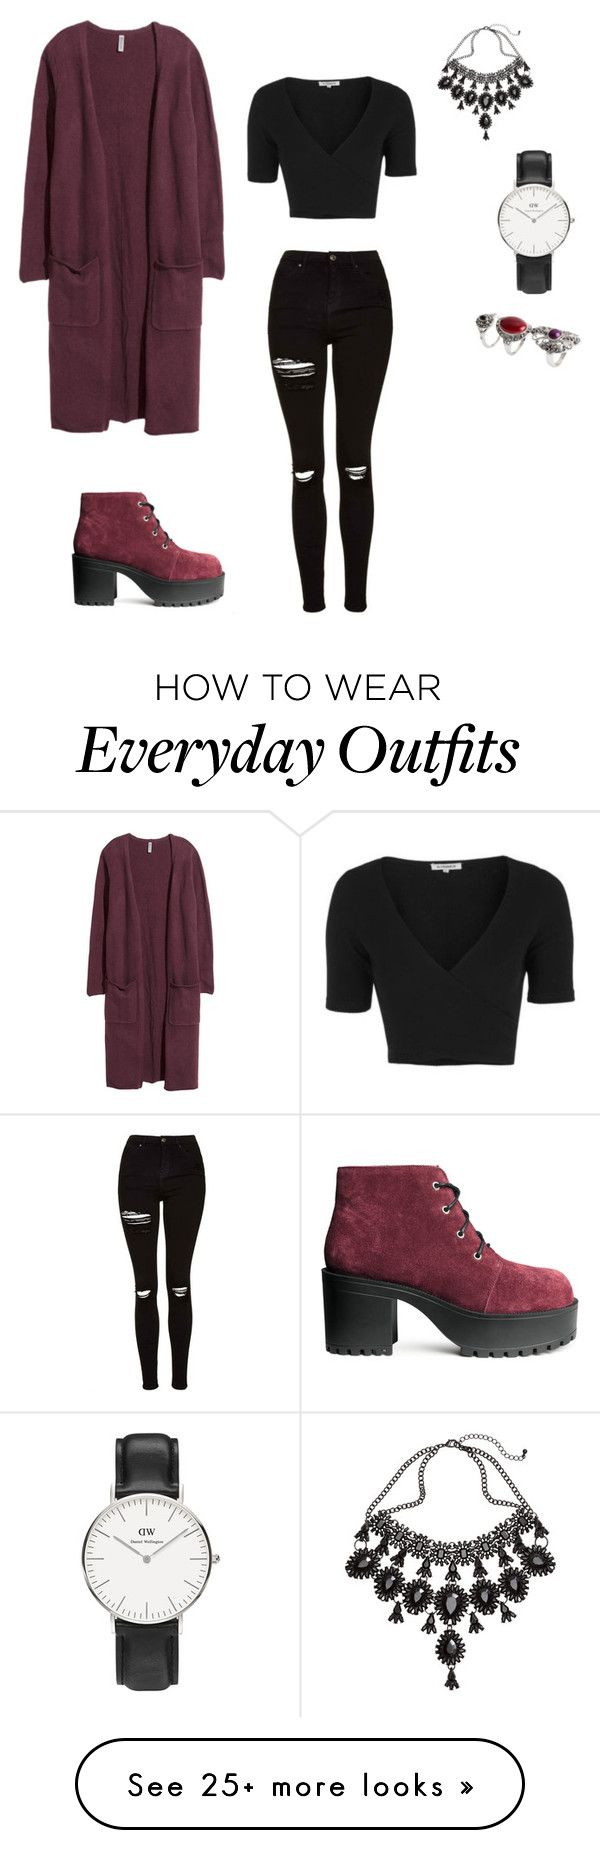 """Everyday grunge outfit"" by caitlynnotjenner on Polyvore featuring H&M, Topshop and Daniel Wellington"